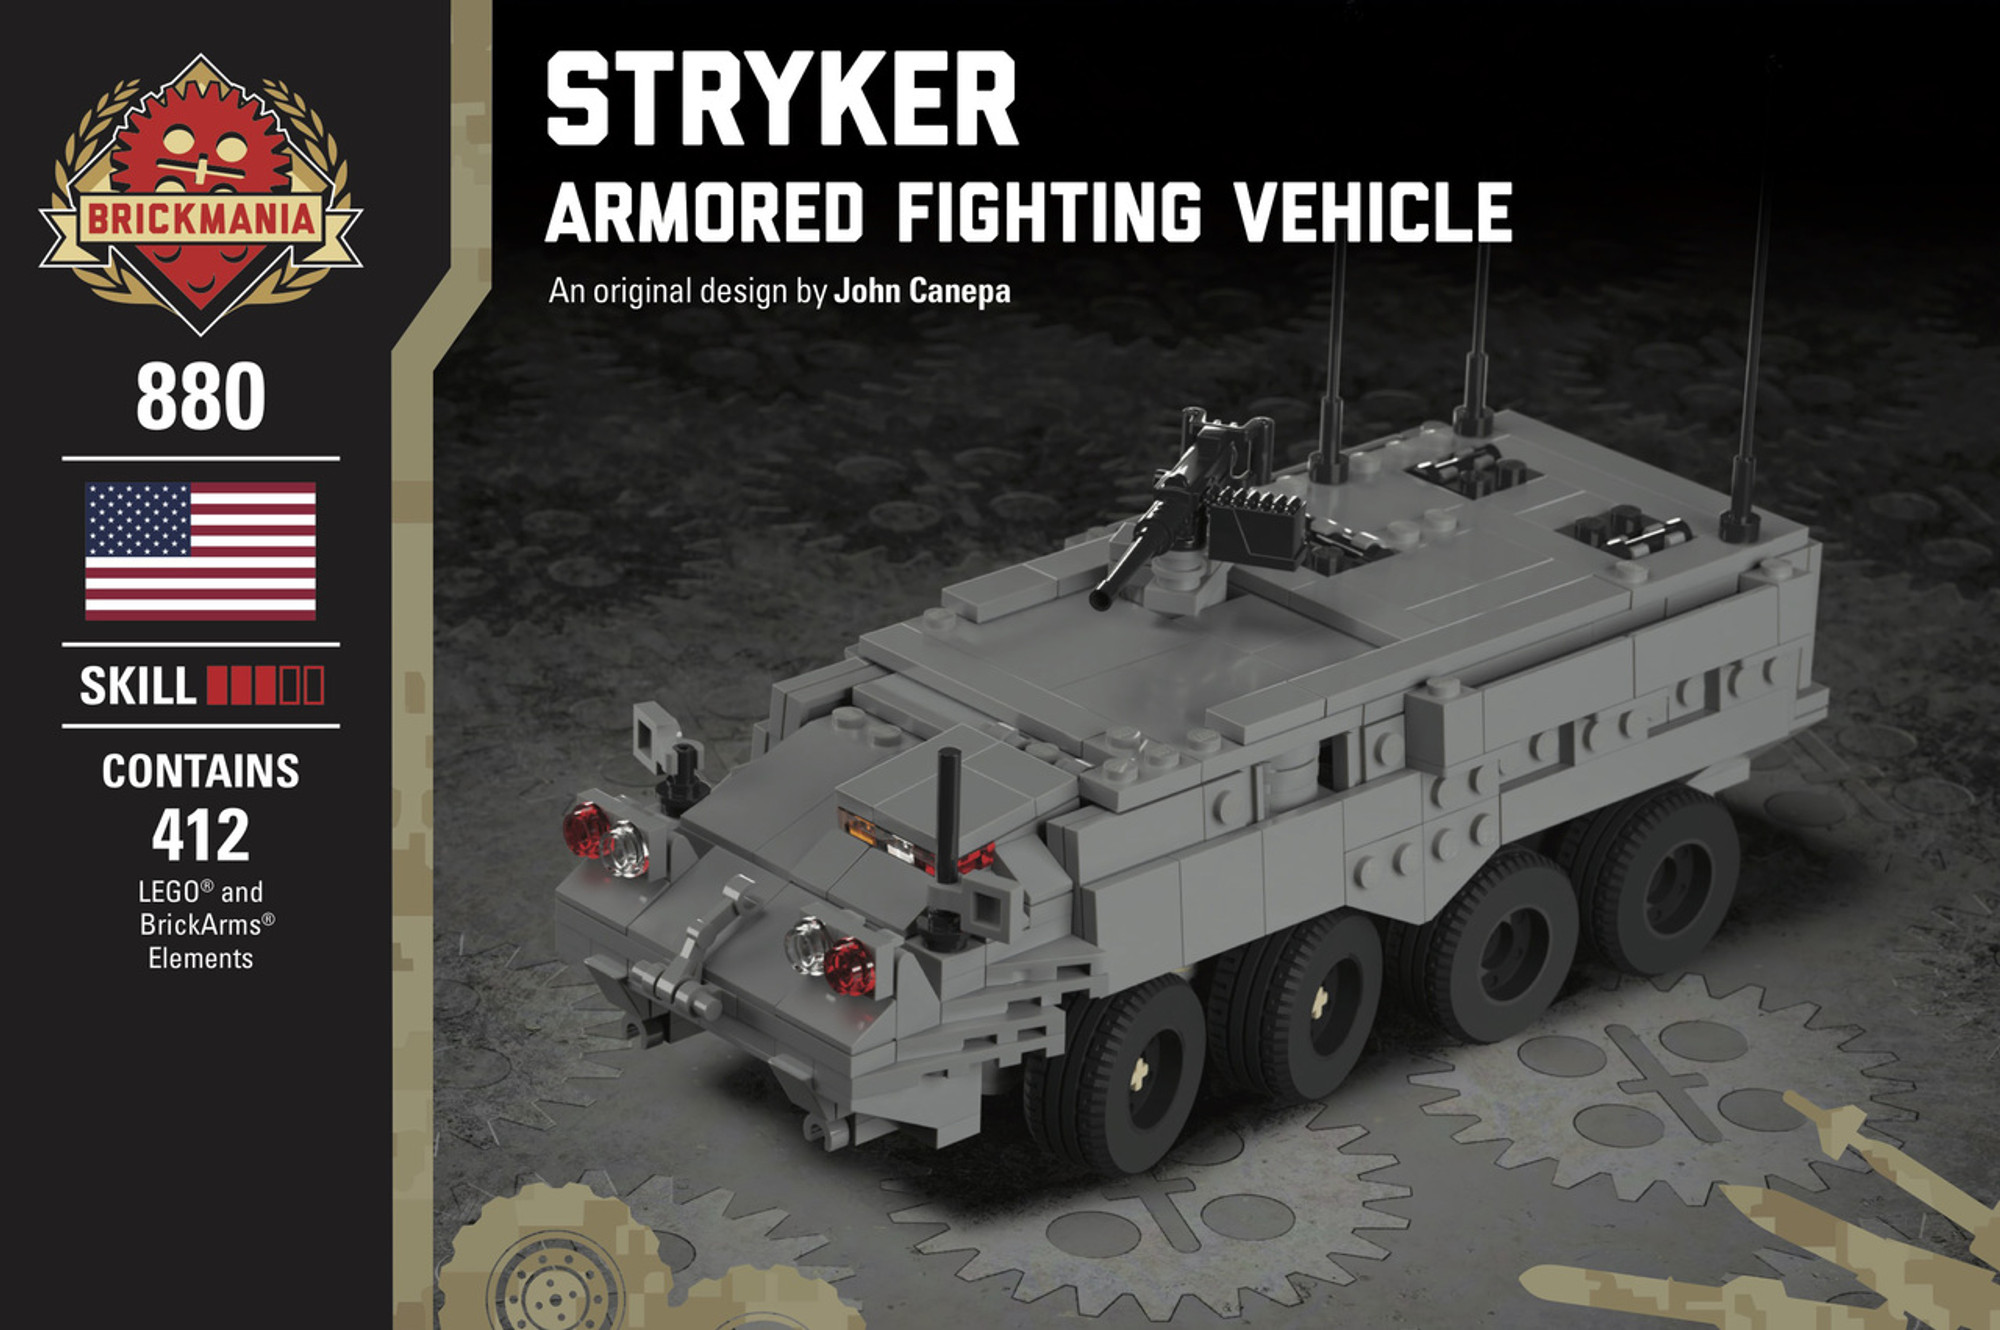 Stryker Armored Fighting Vehicle Brickmania Toys